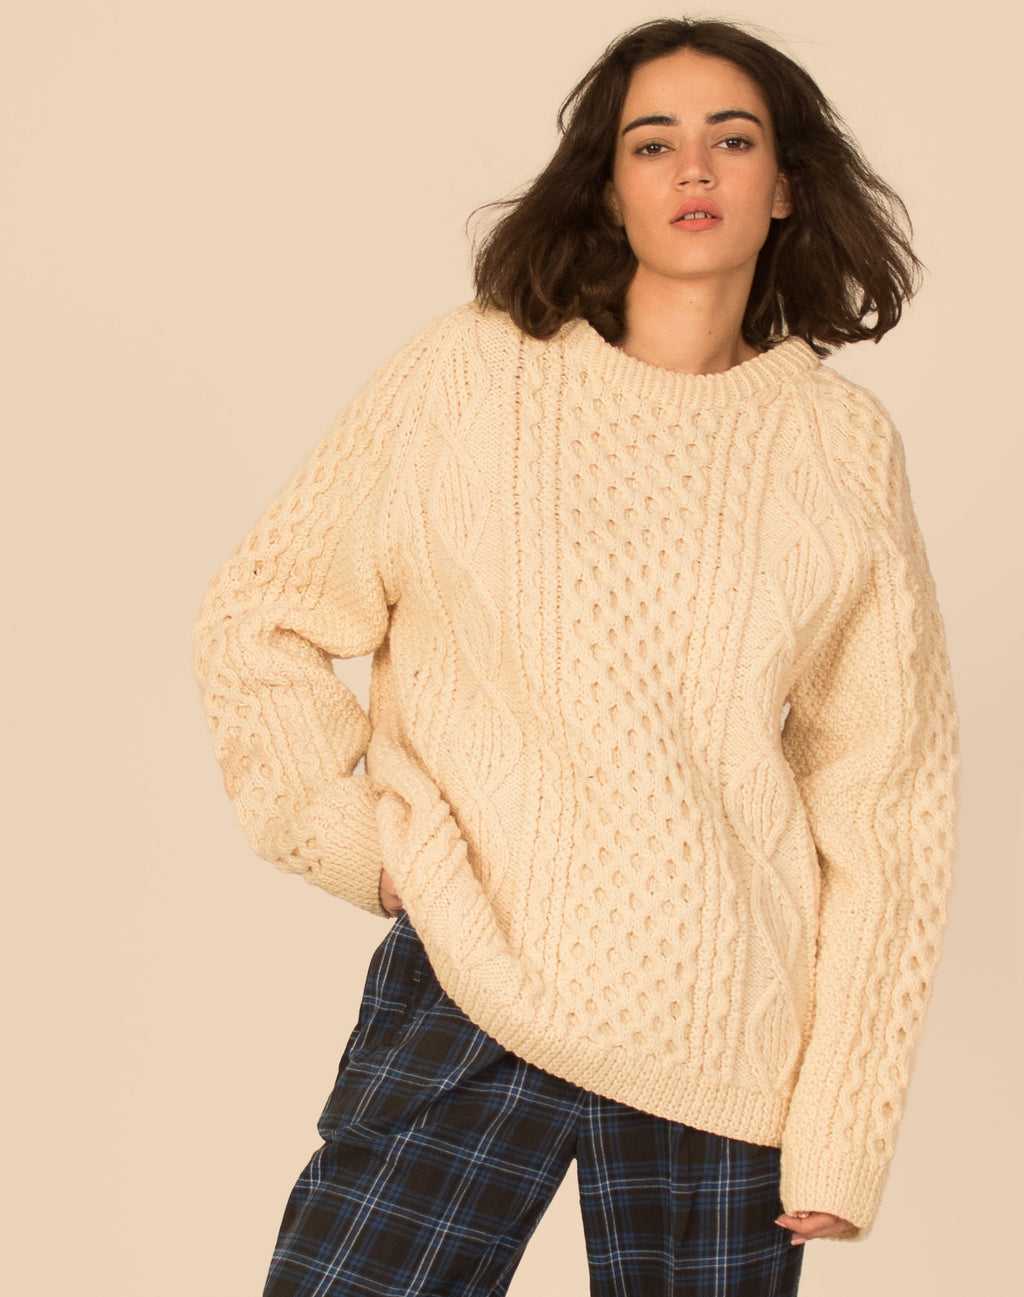 CREAM ARAN CABLE KNIT JUMPER